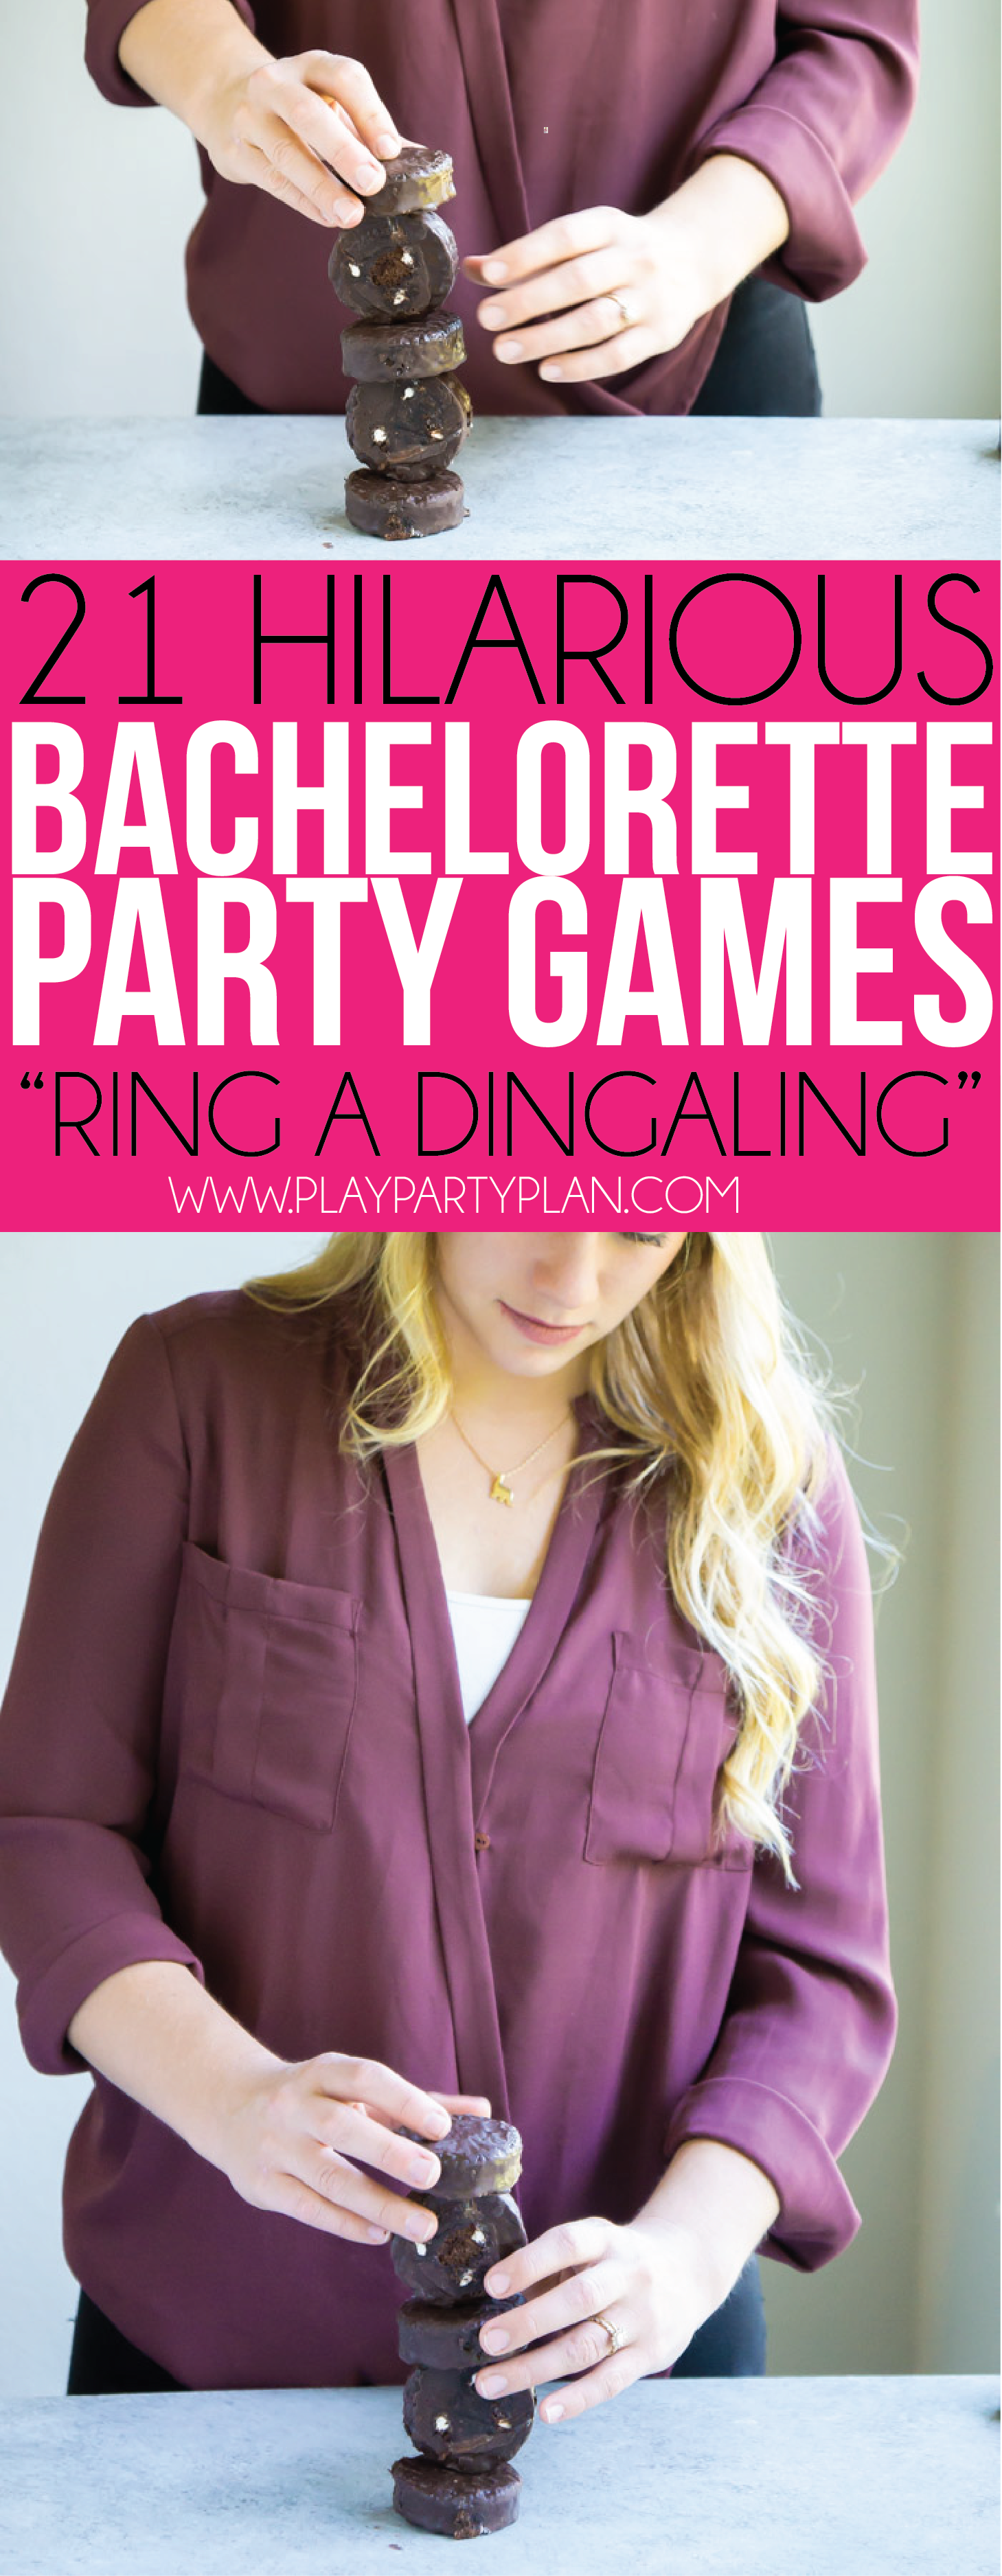 Yummy ding dongs start in these fun bachelorette party games